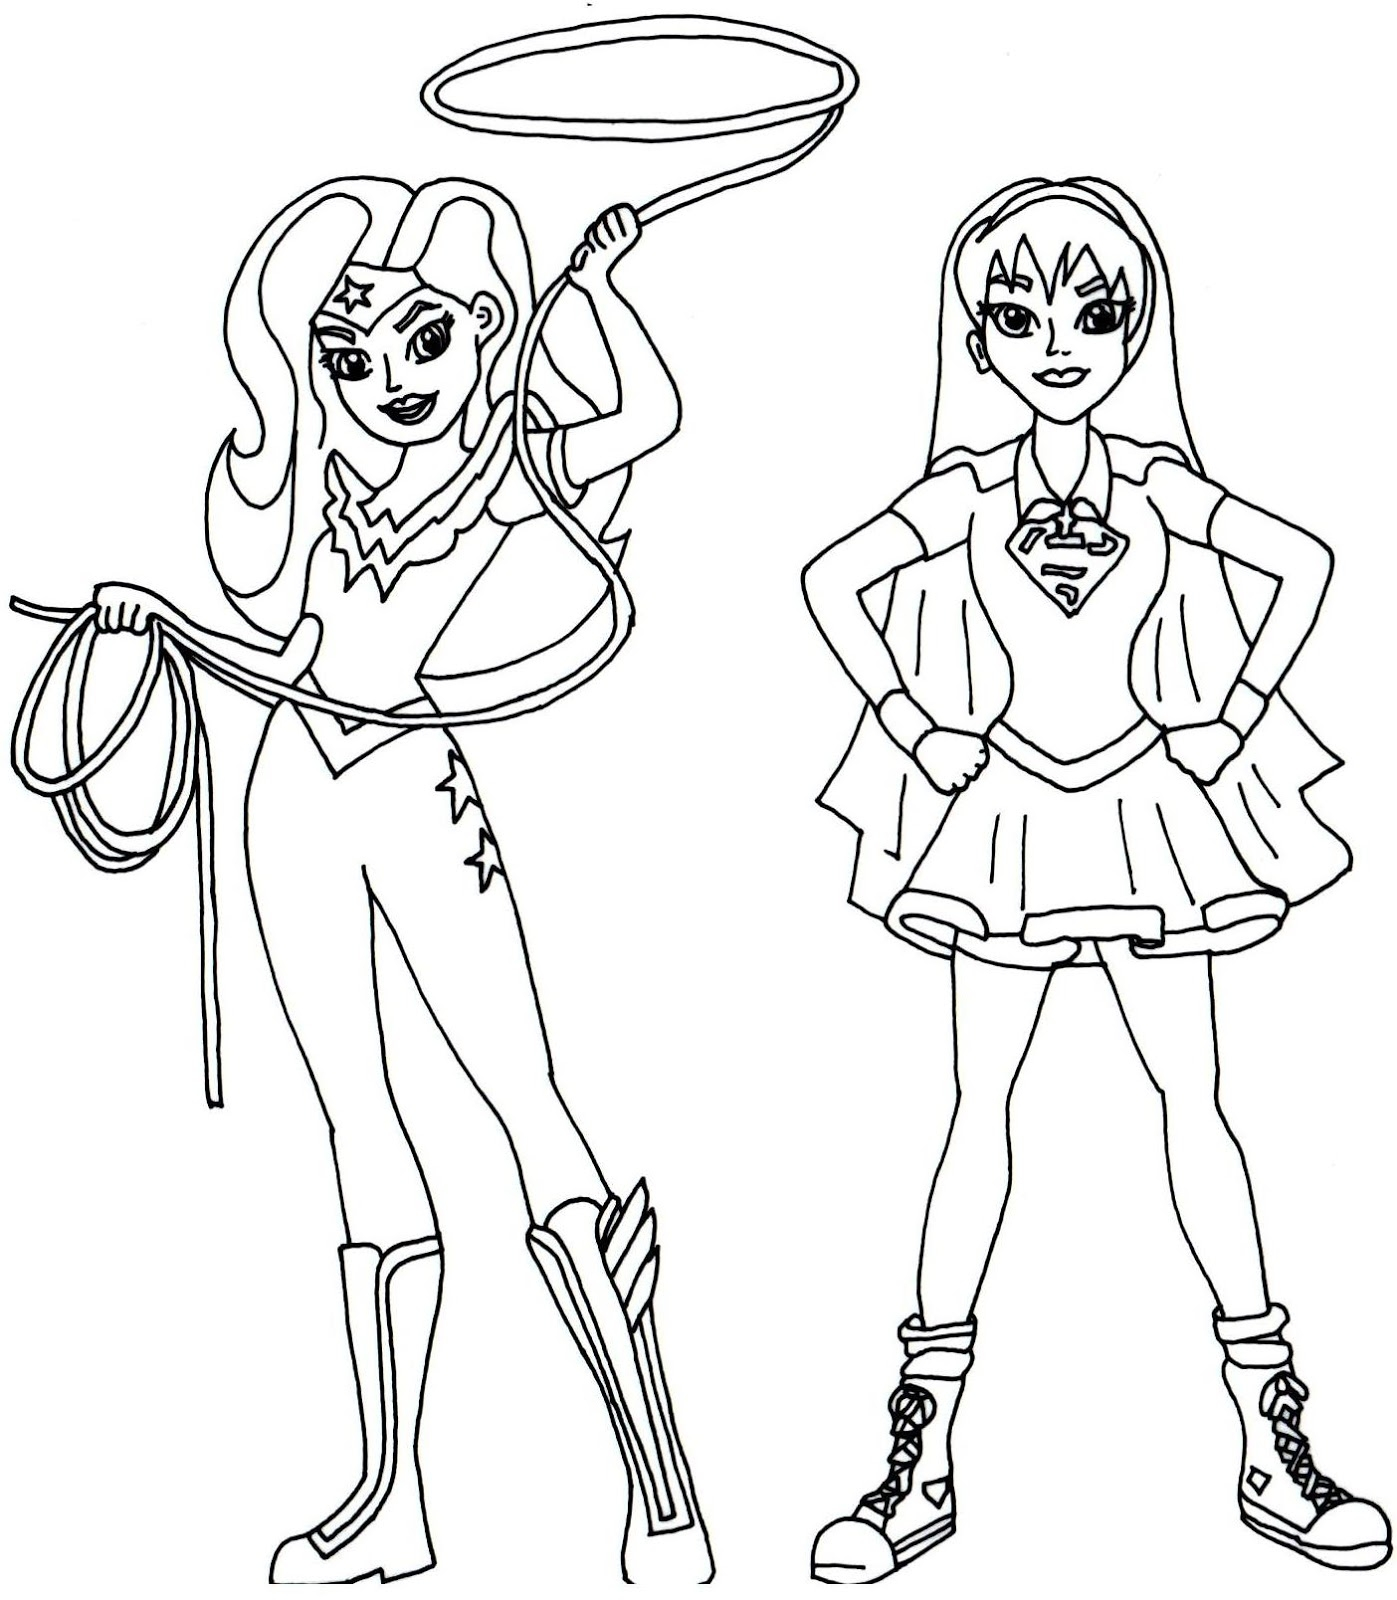 20 Girl Superhero Coloring Pages Printable | FREE COLORING PAGES ...